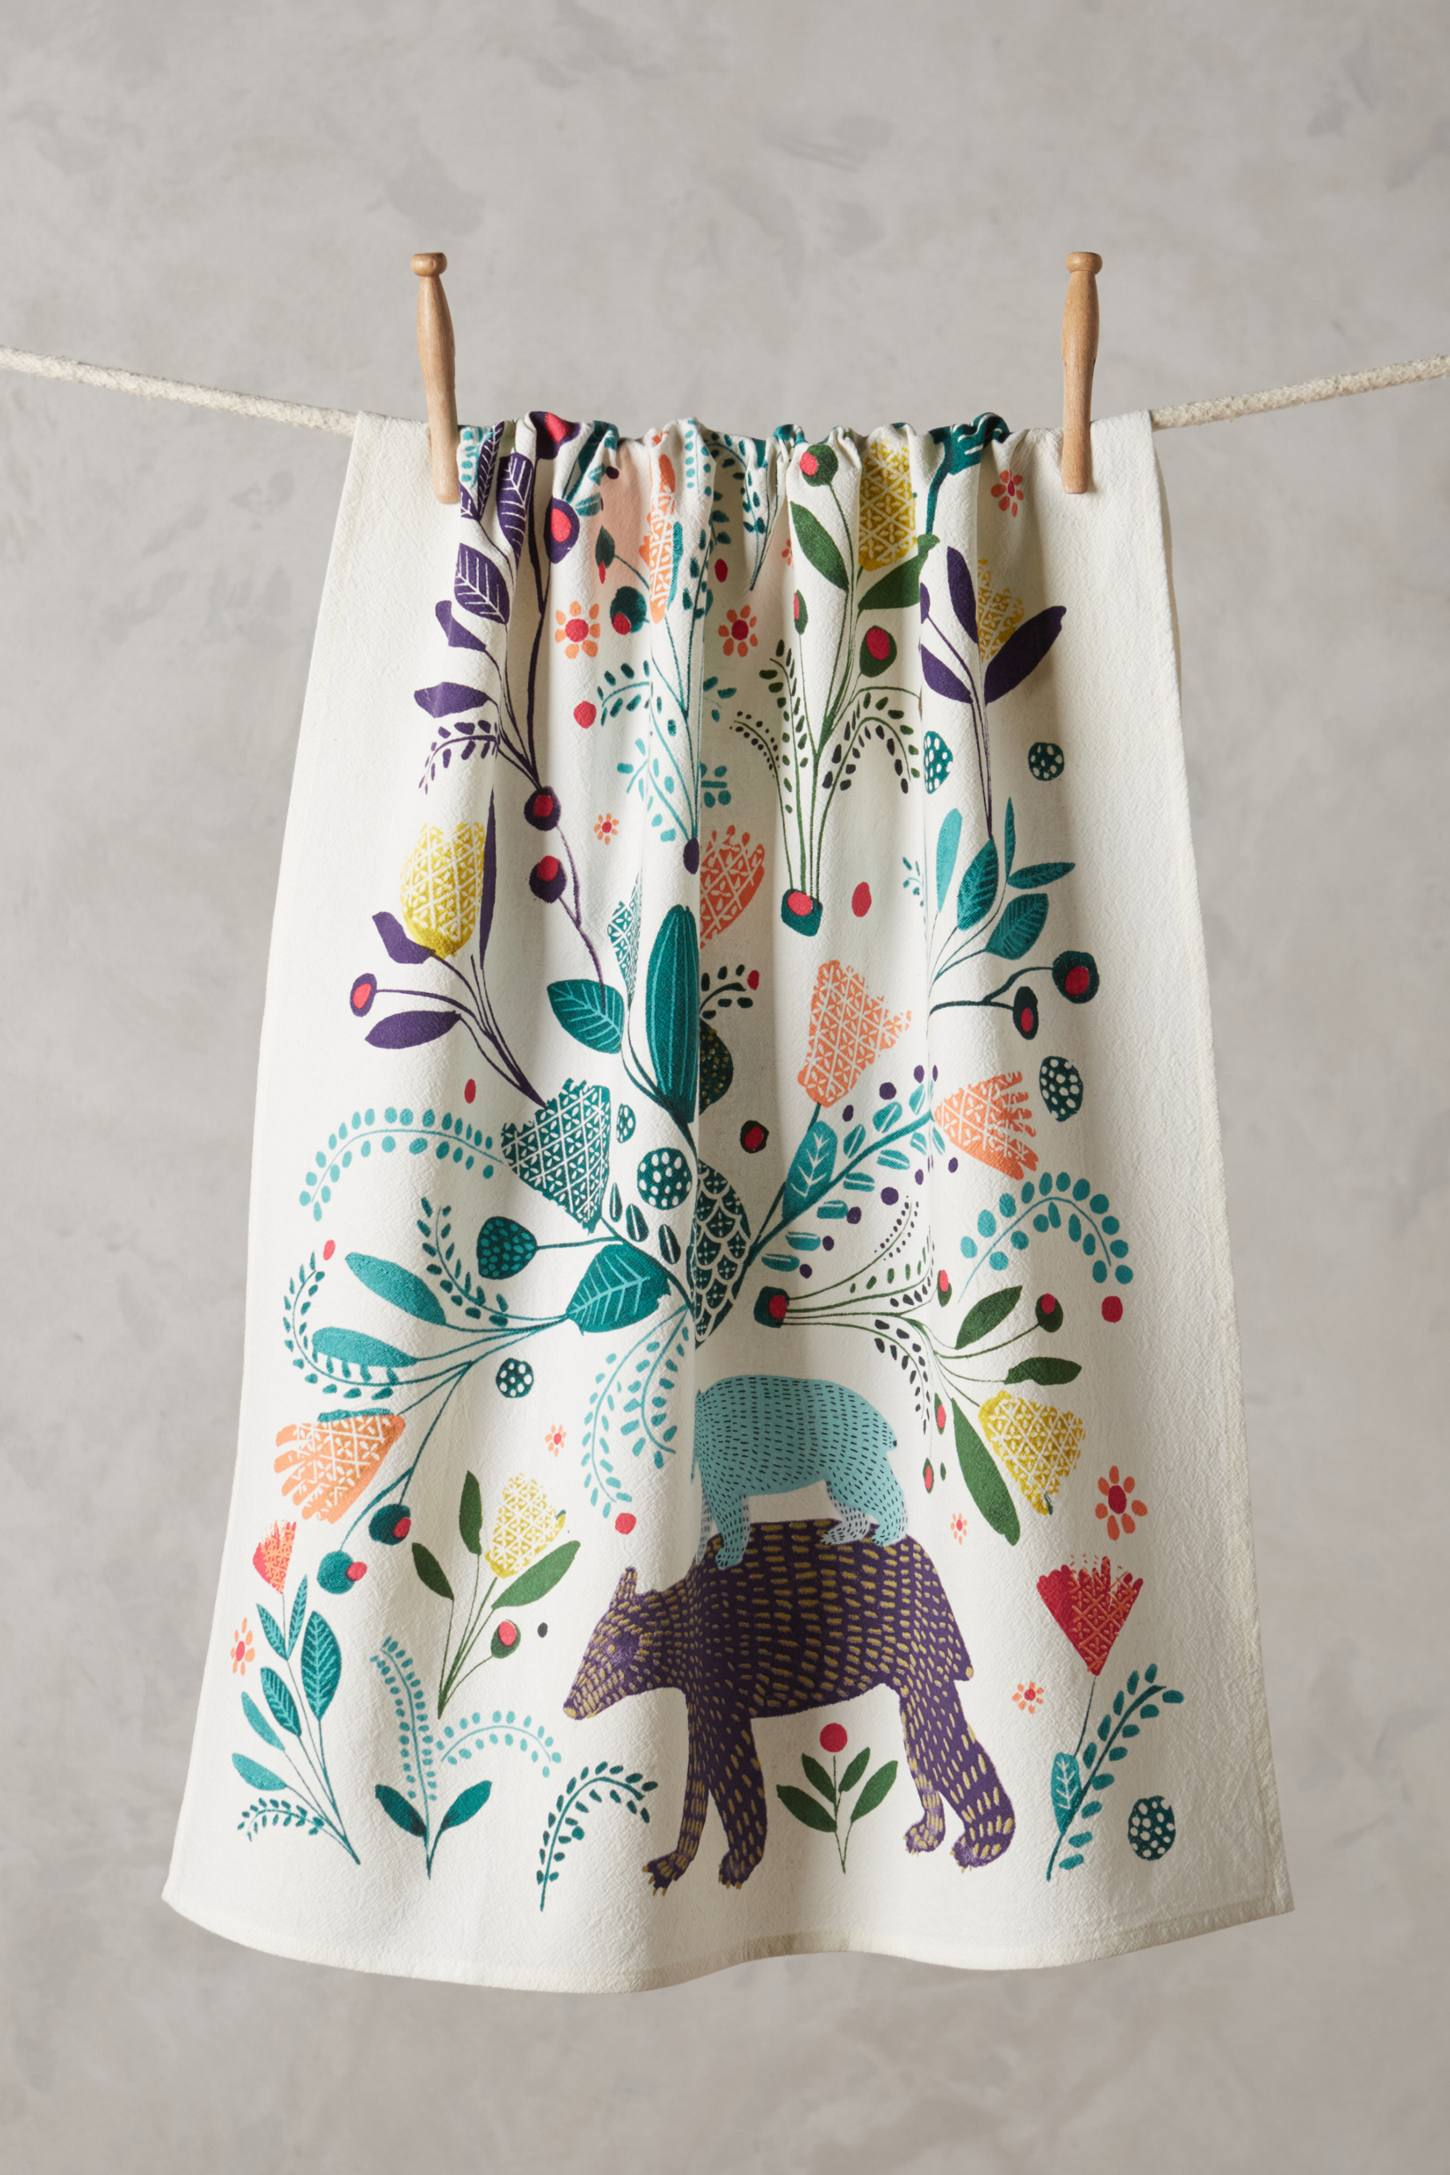 Merveilleux Zara Home: Jacquard Kitchen Towel